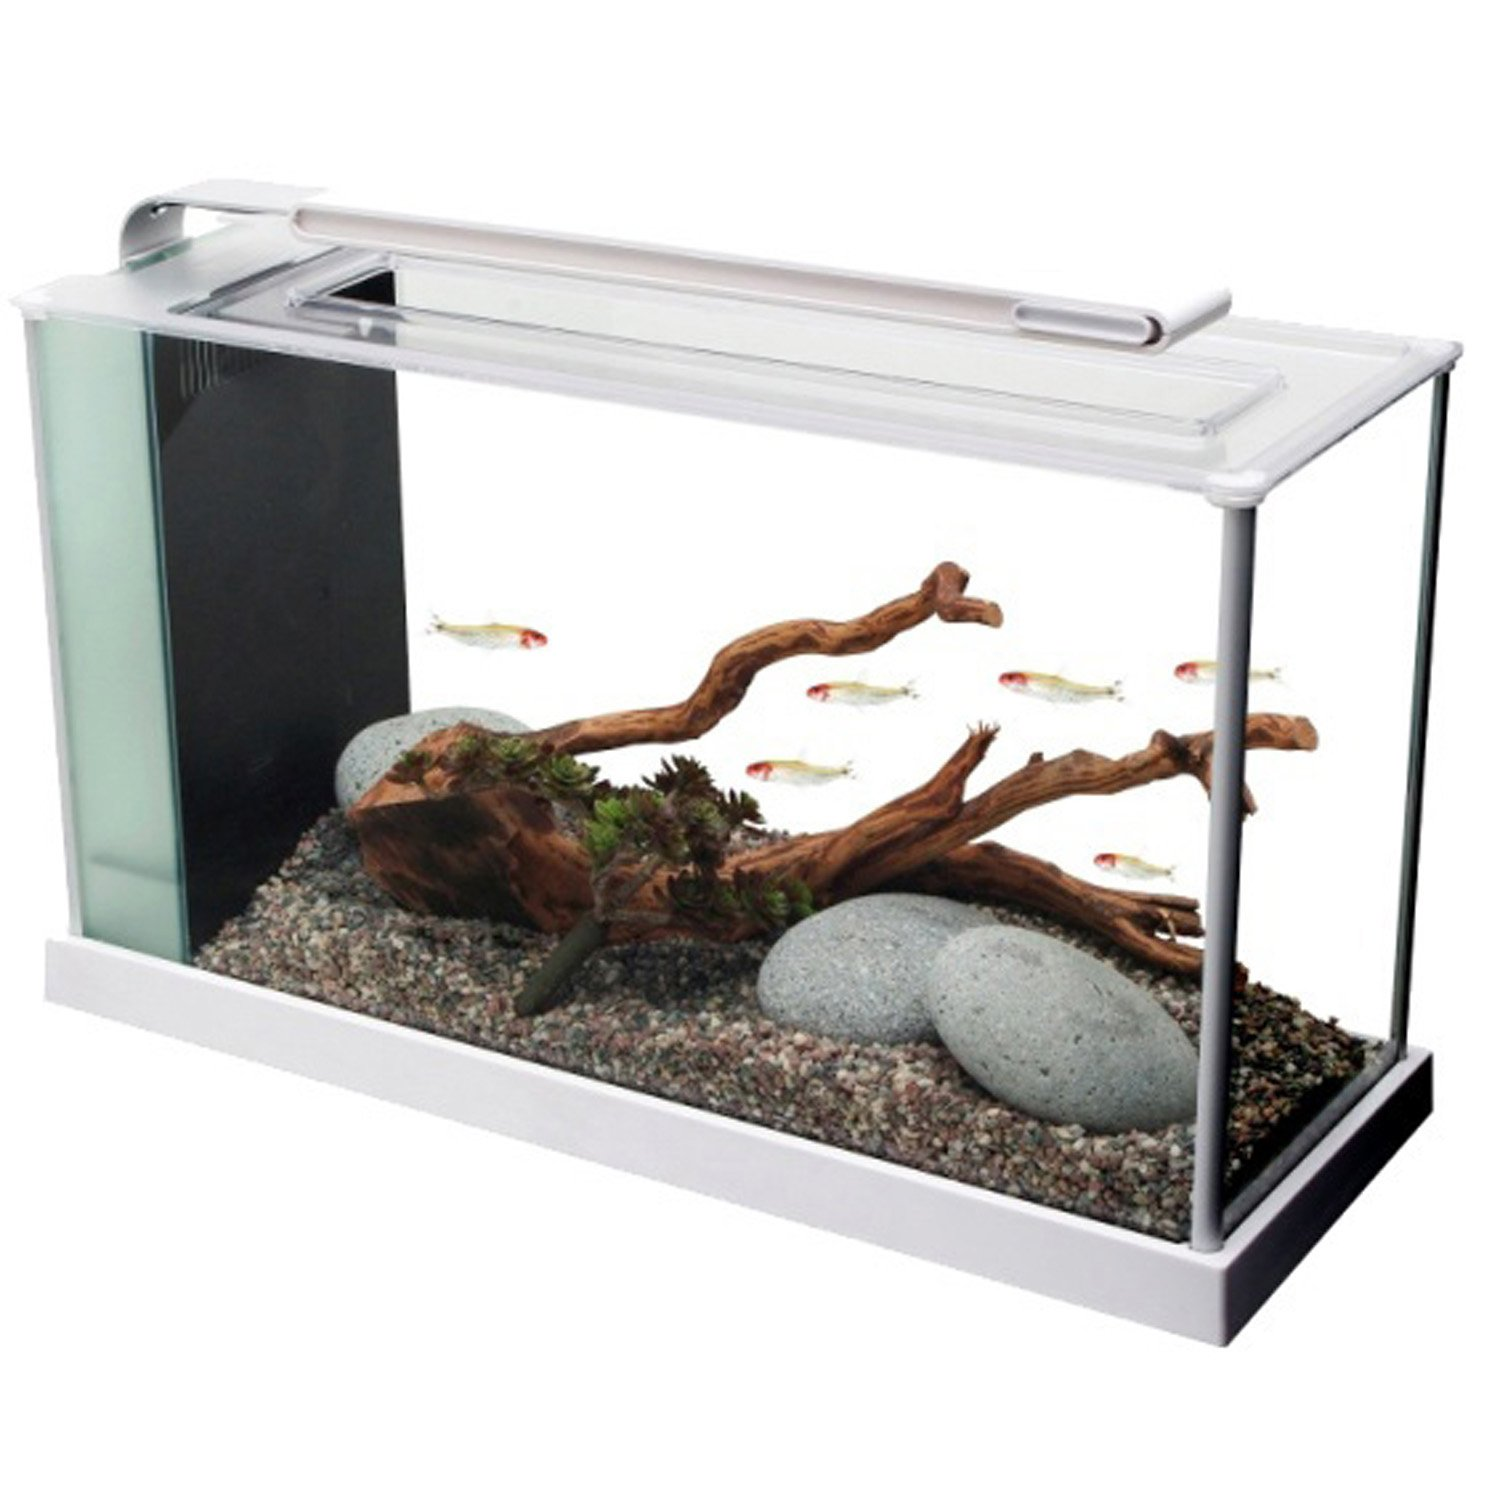 Fluval 5 Gallon Spec V Aquarium Kit White